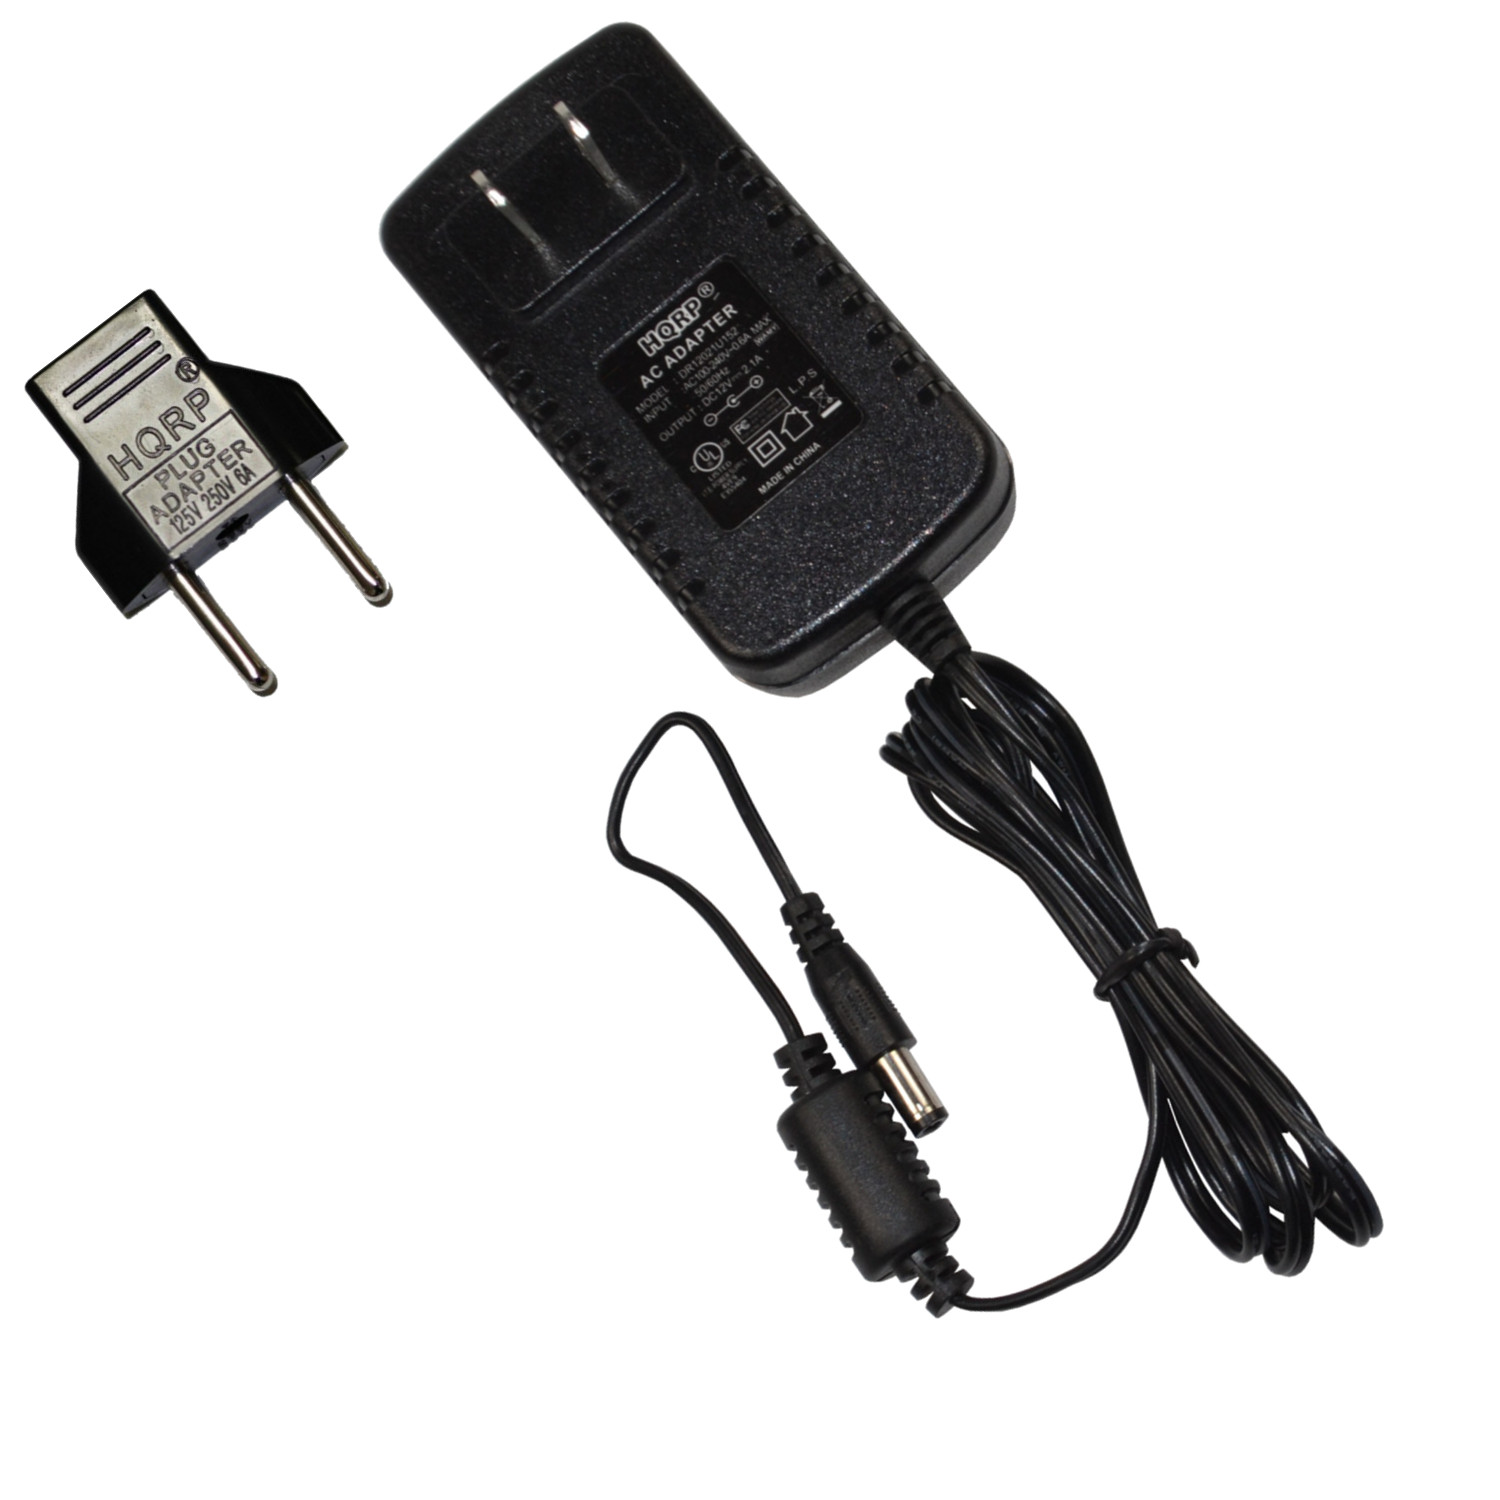 HQRP AC Adapter for Logitech Squeezebox Boom All-in-One Network Music Player Wi-Fi Internet Radio 930-000054, 830-000030, 993-000199, X-RB2 Power Supply Cord [UL Listed] + Euro Plug Adapter